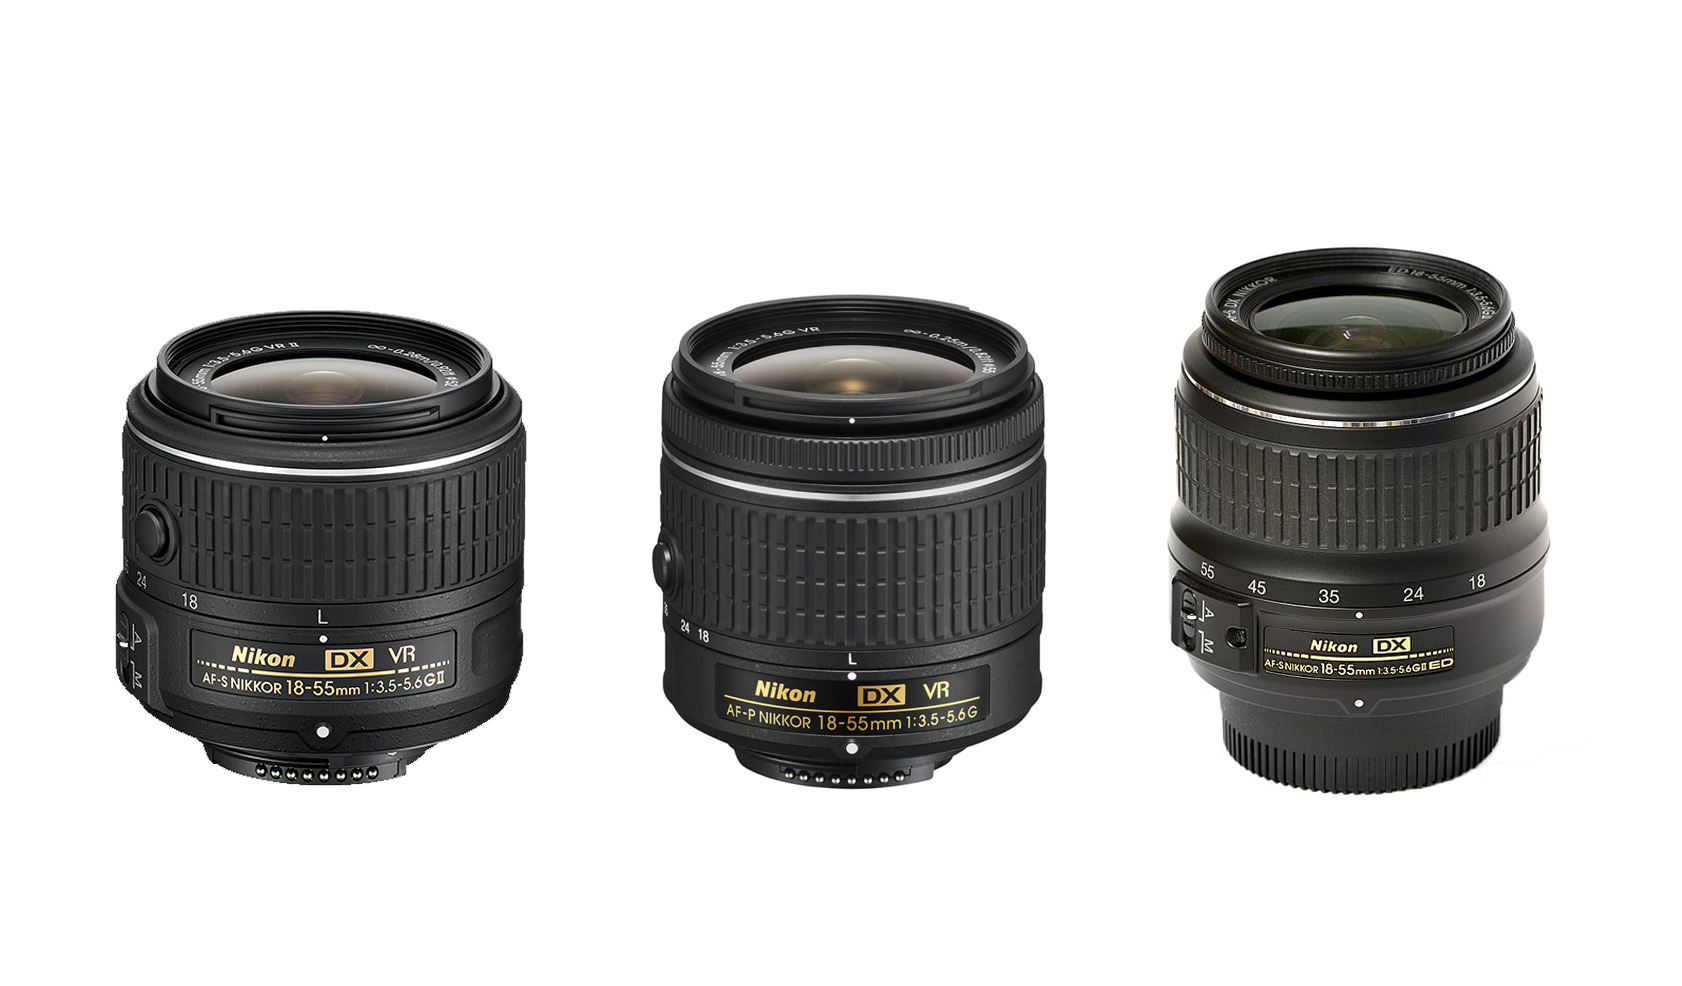 Nikon 18 55mm F 35 56g Dx Vr Af P Review Photography Life D5200 Kit Ii In This I Will Focus On The Comparison Of Latest Version With Older S Just For Sake Highlighting Progress